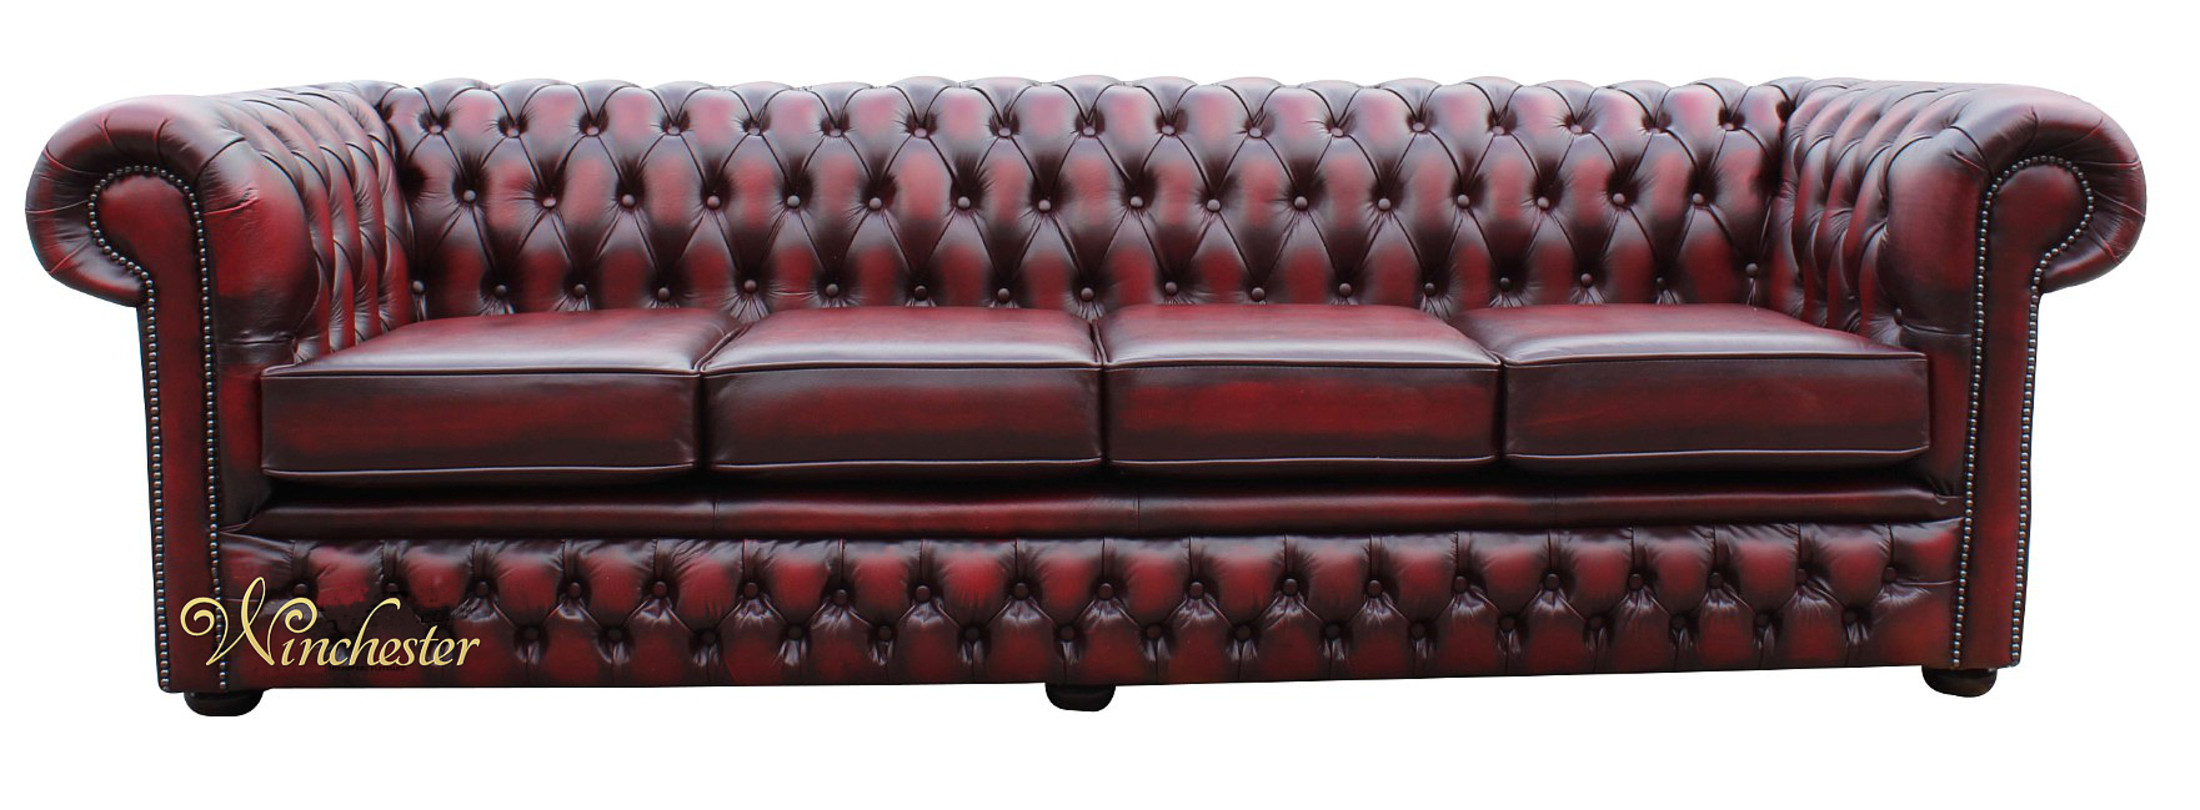 Chesterfield 4 Seater Sofa Settee Oxblood Leather Wc